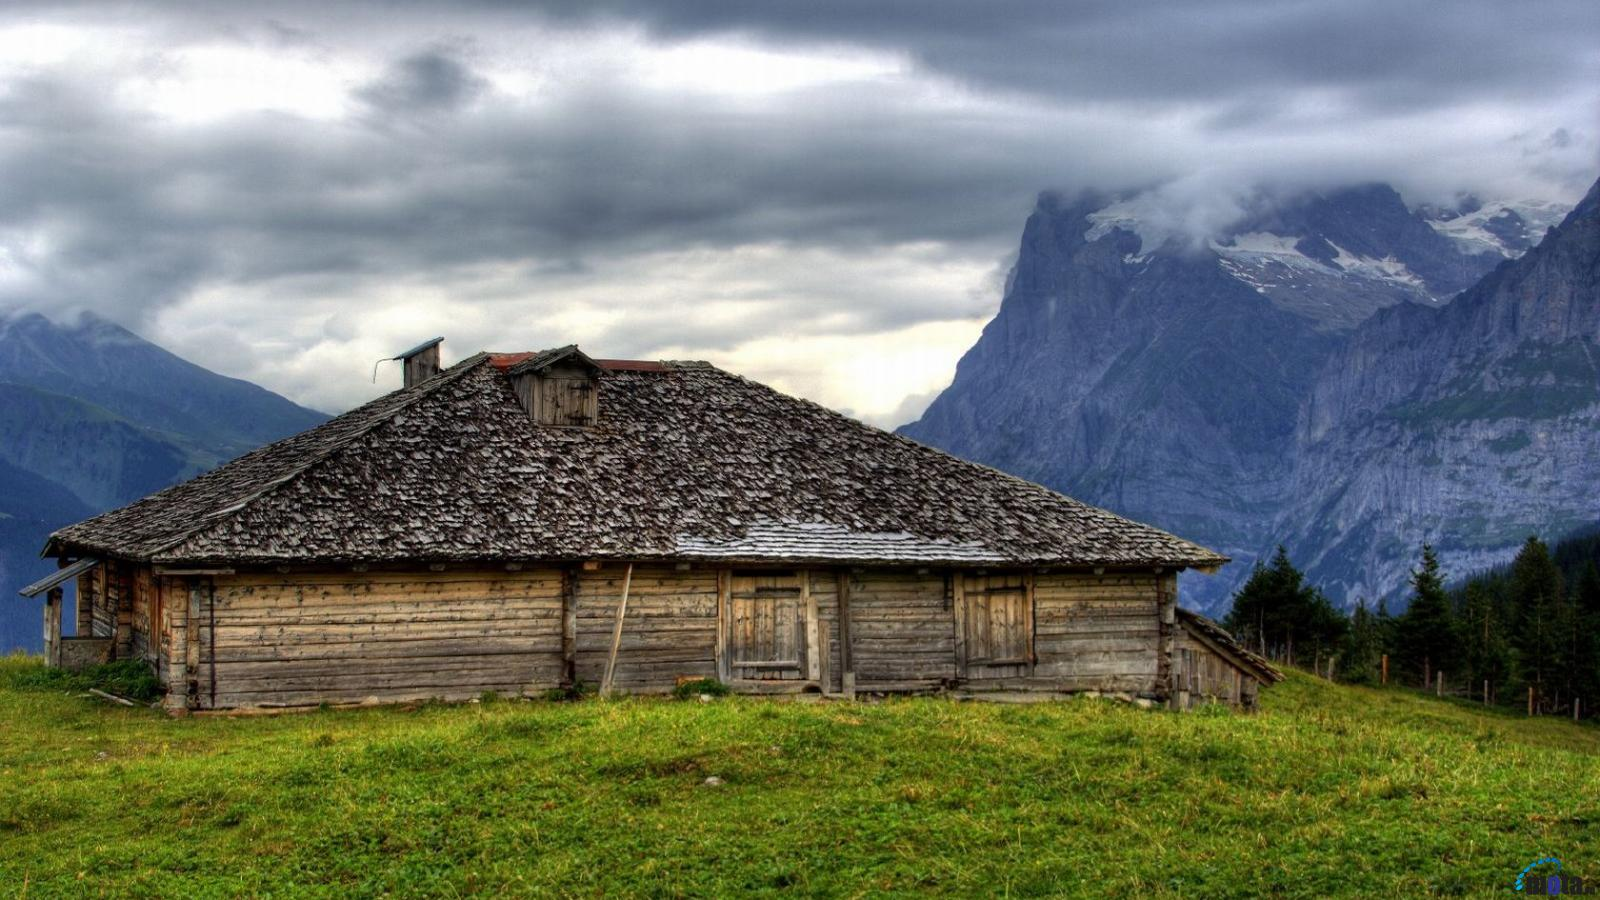 Wallpaper Old house in the mountains 1600 x 900 widescreen Desktop 1600x900